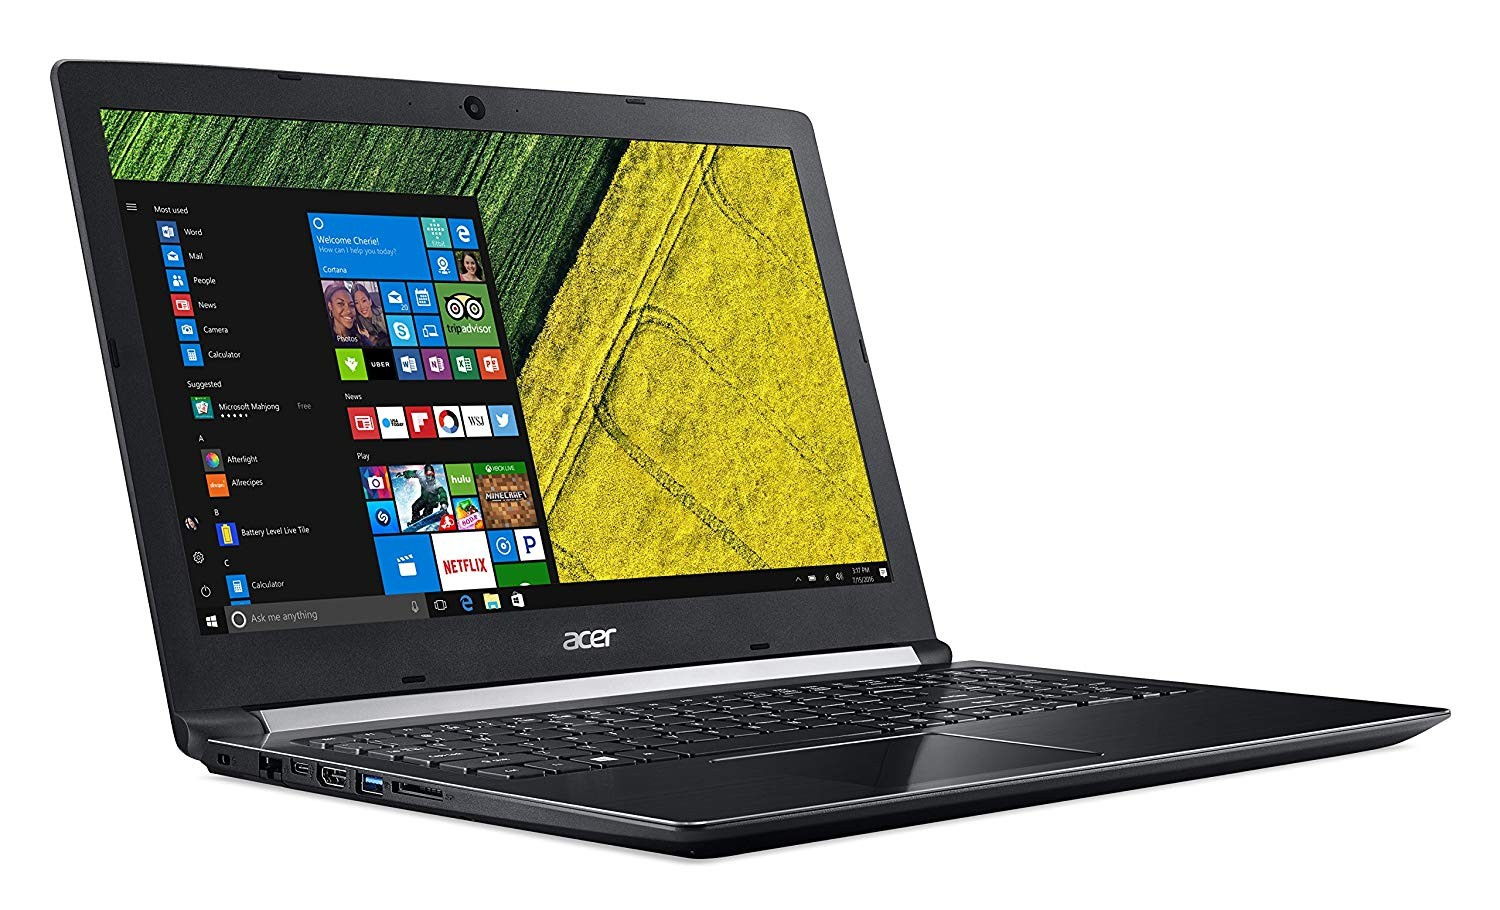 Acer Aspire 5 A515-51G-55FA Notebook